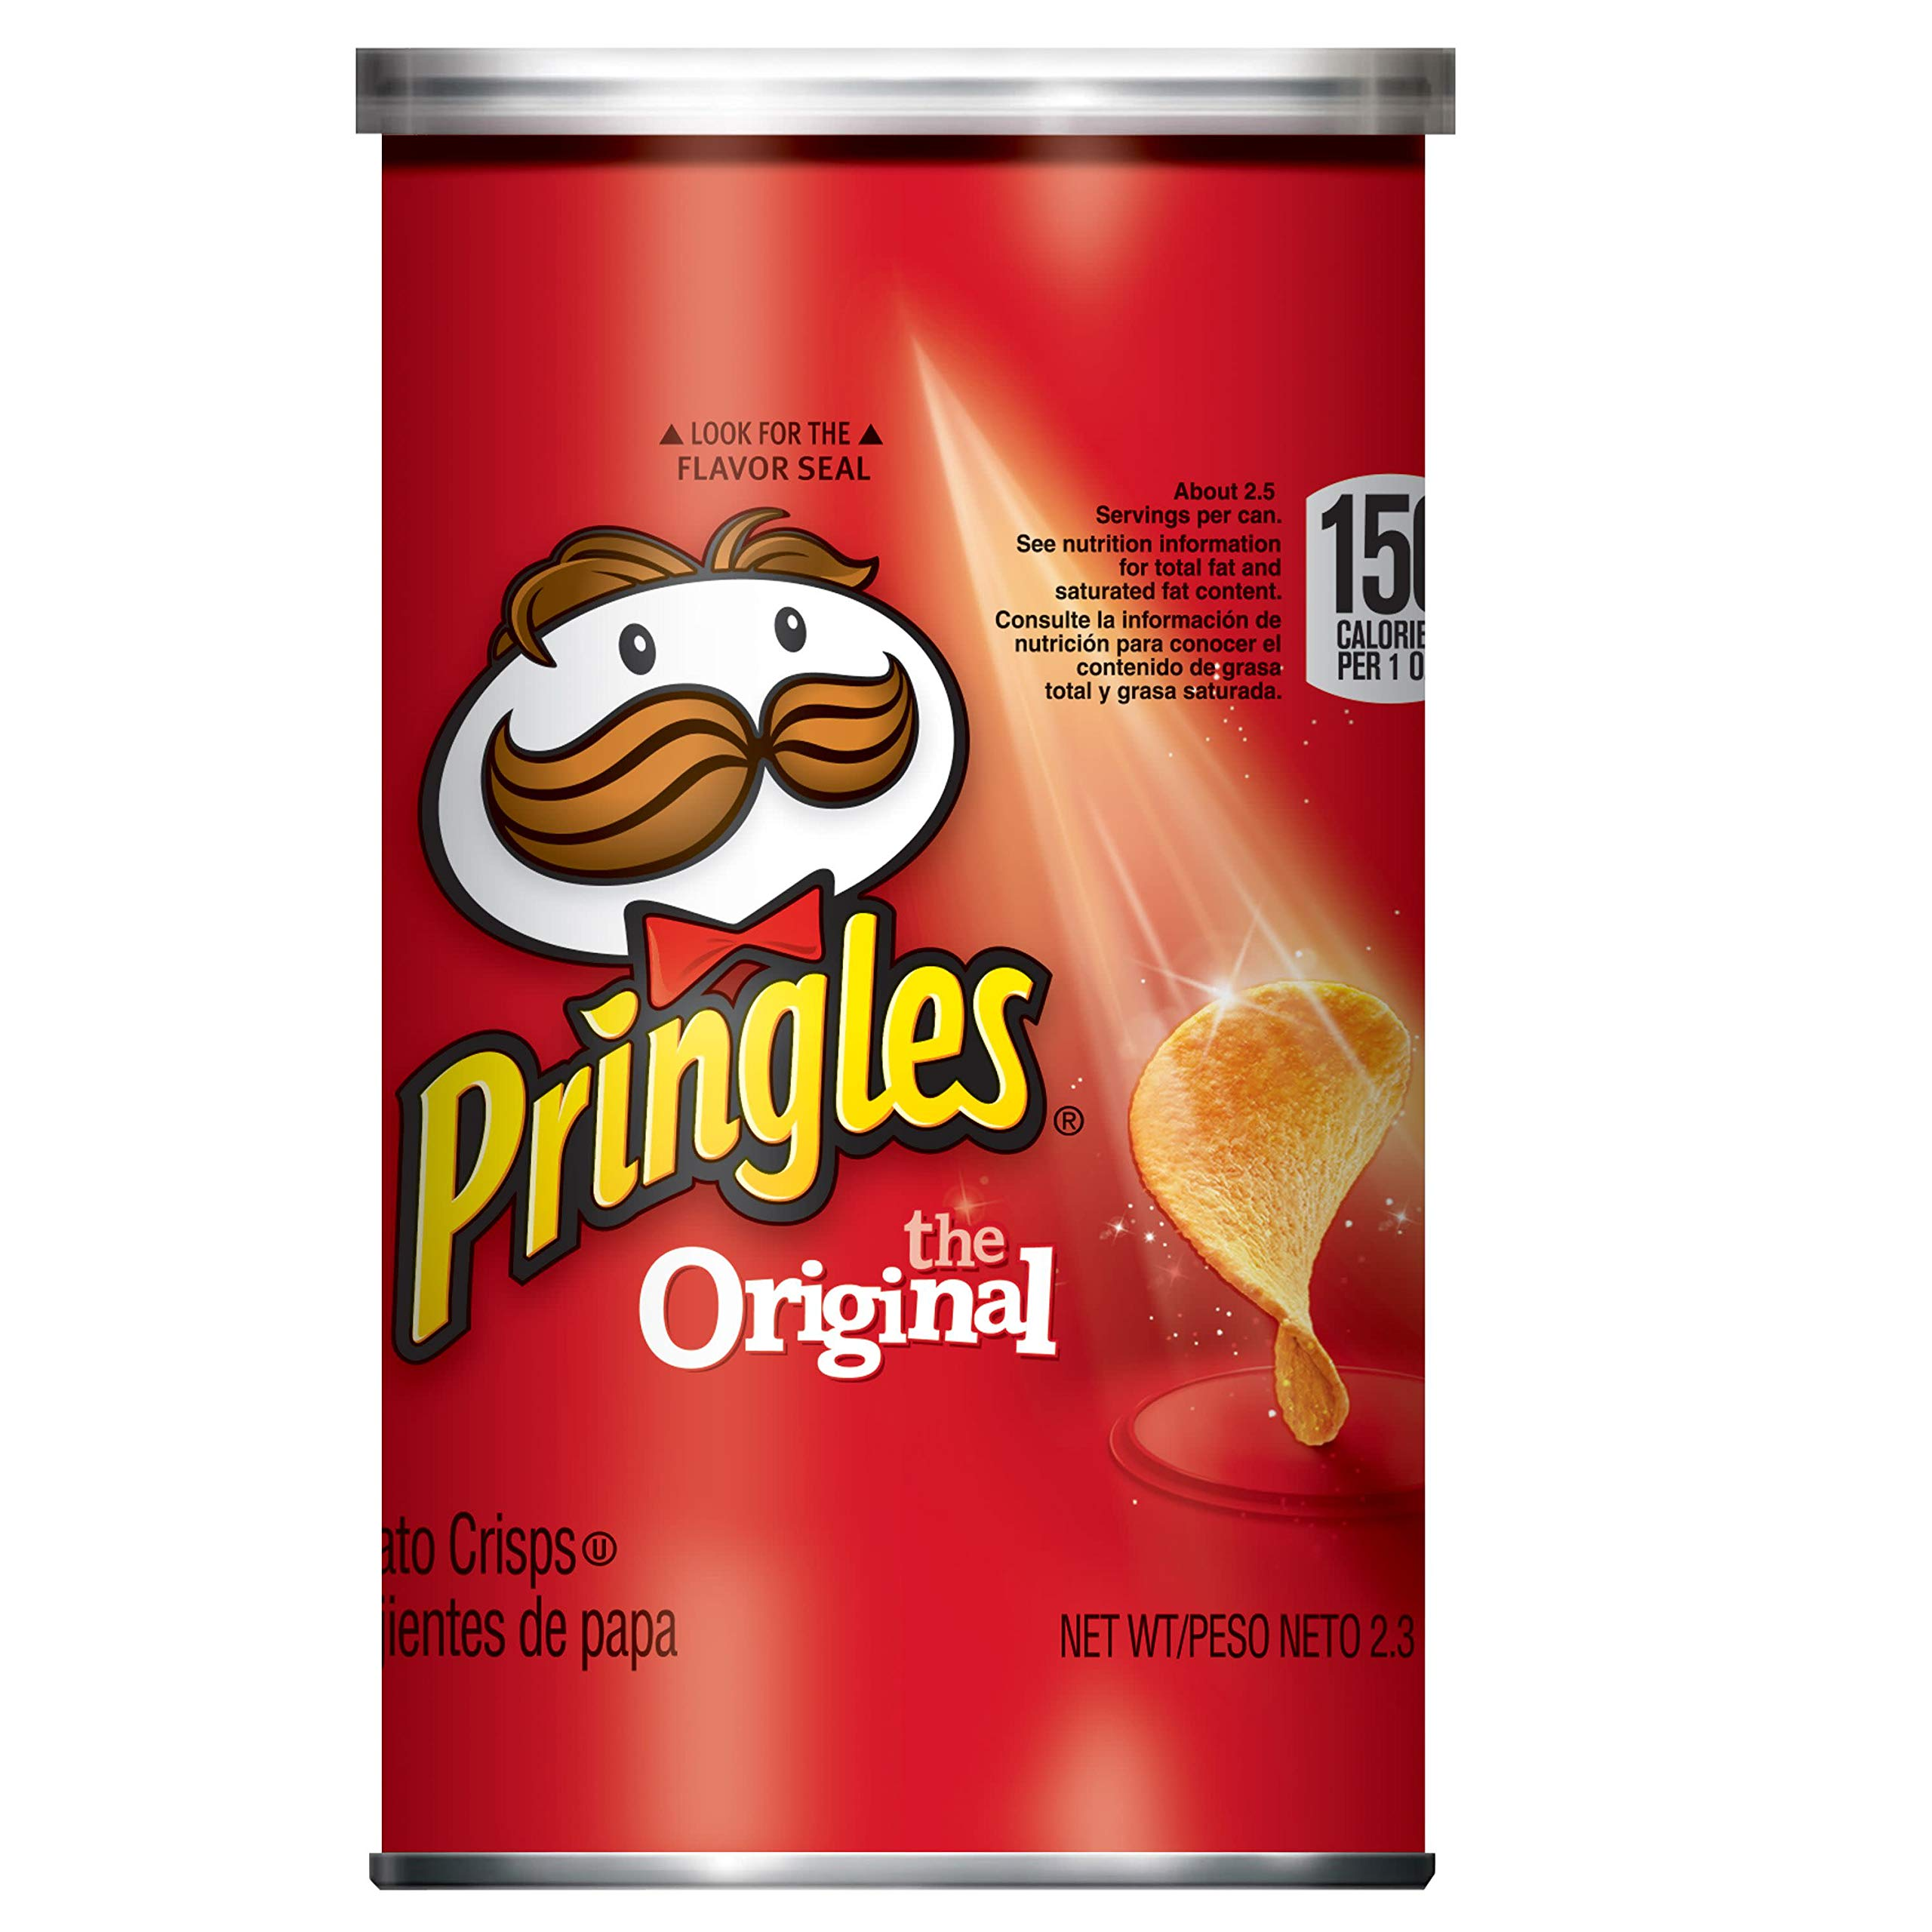 Pringles The Original Potato Crisps - Perfectly Seasoned Salty Snack, Game Day Party Food (12 Cans) by Pringles